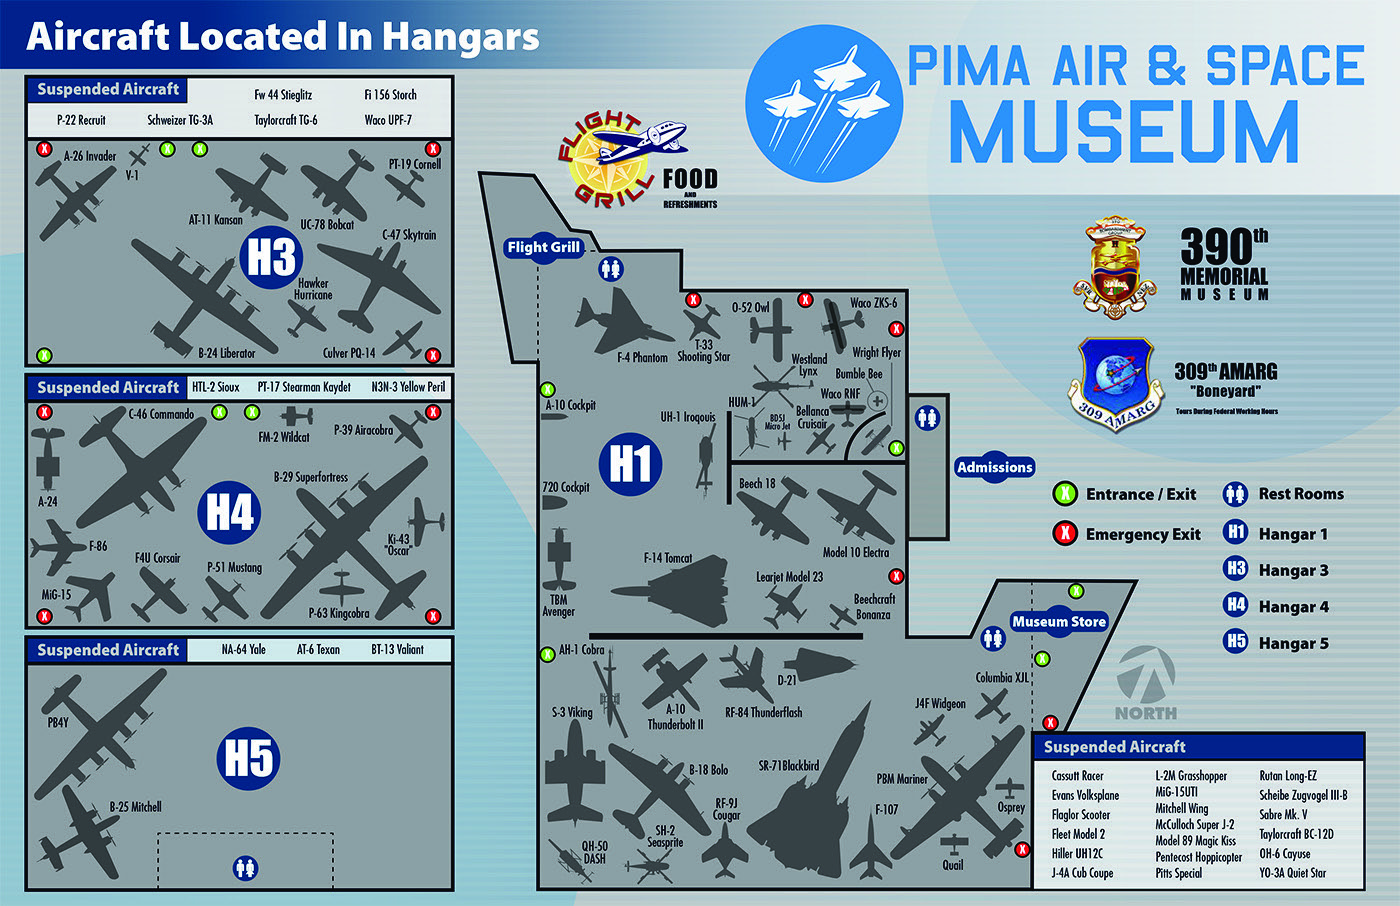 Aircraft located in Hangars (Map)